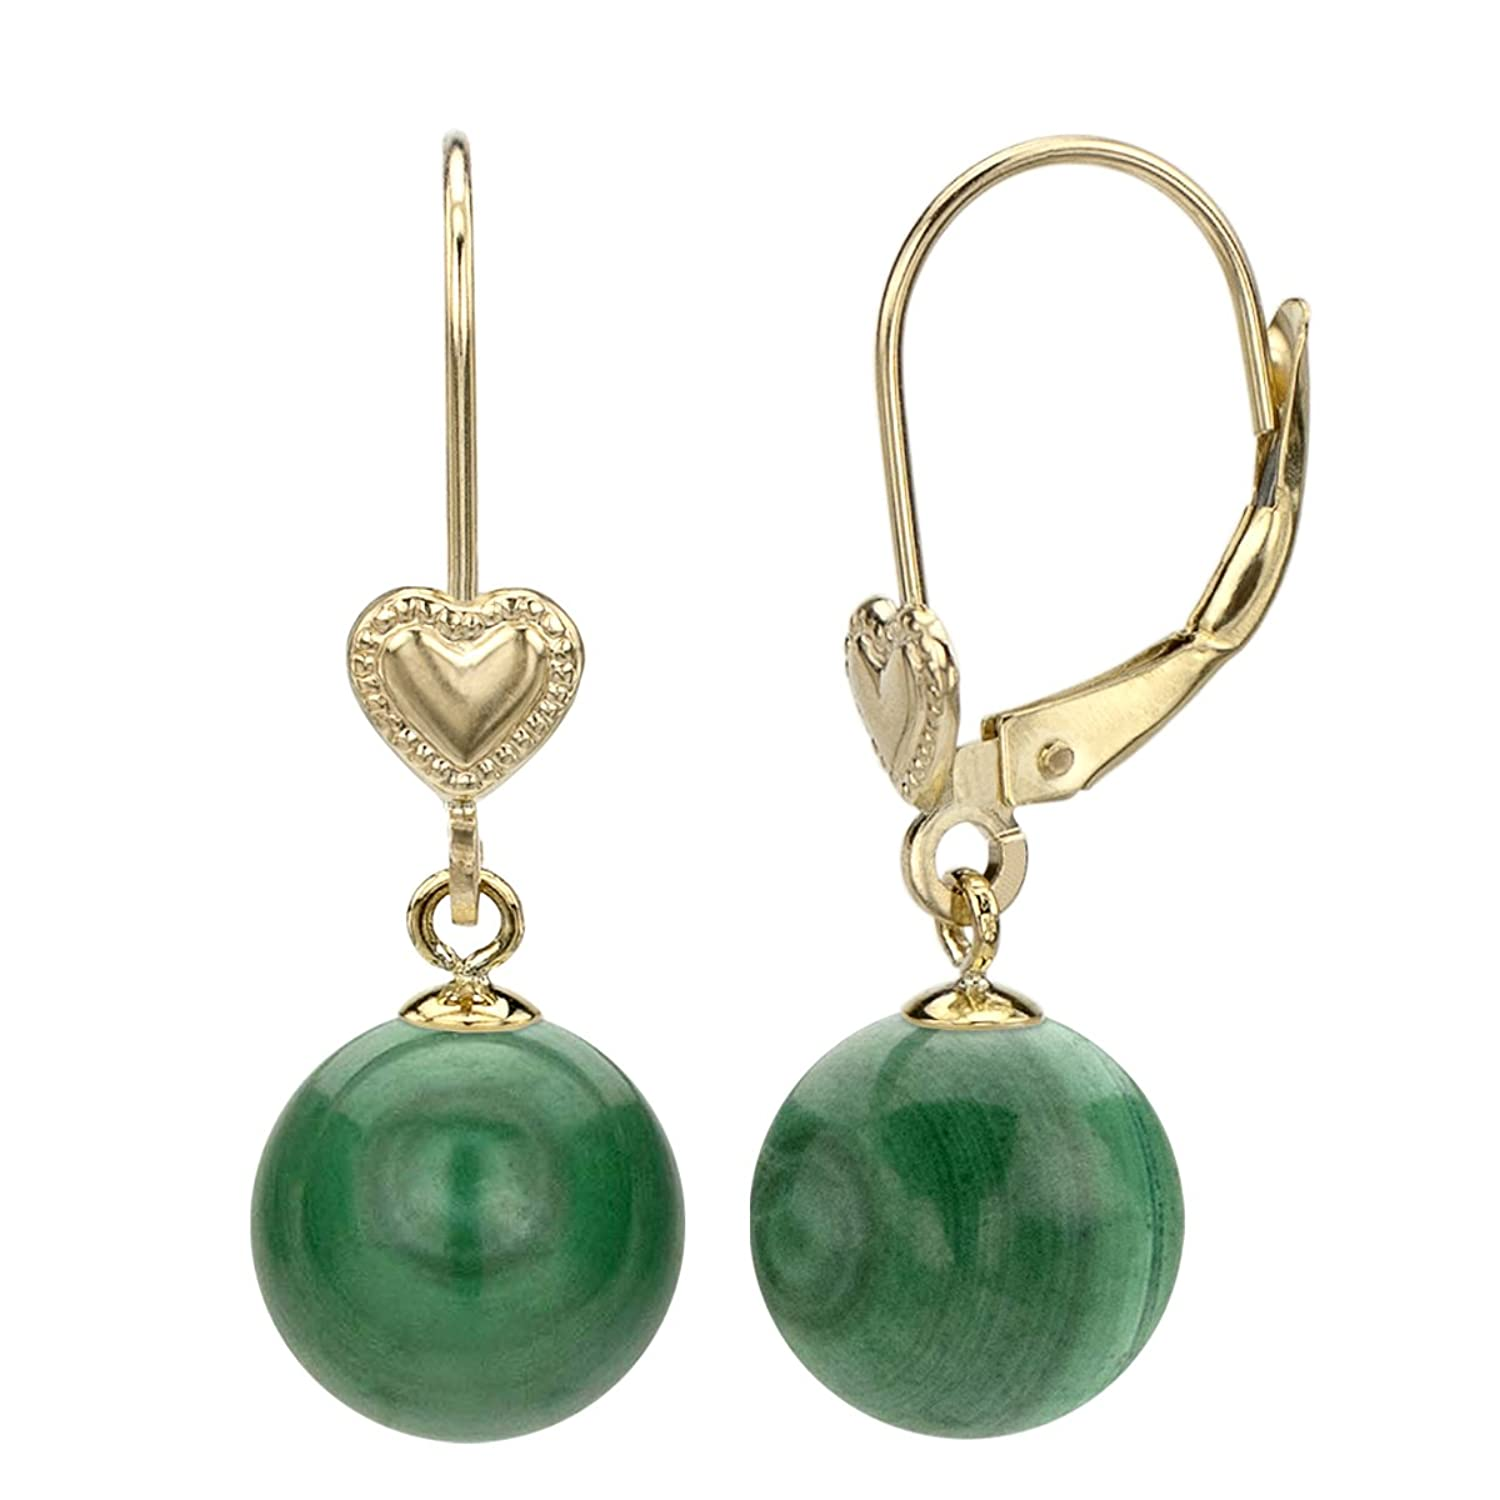 14k Yellow Gold 8-8.5mm Round Simulated Green Malachite Heart Design Lever-back Earrings